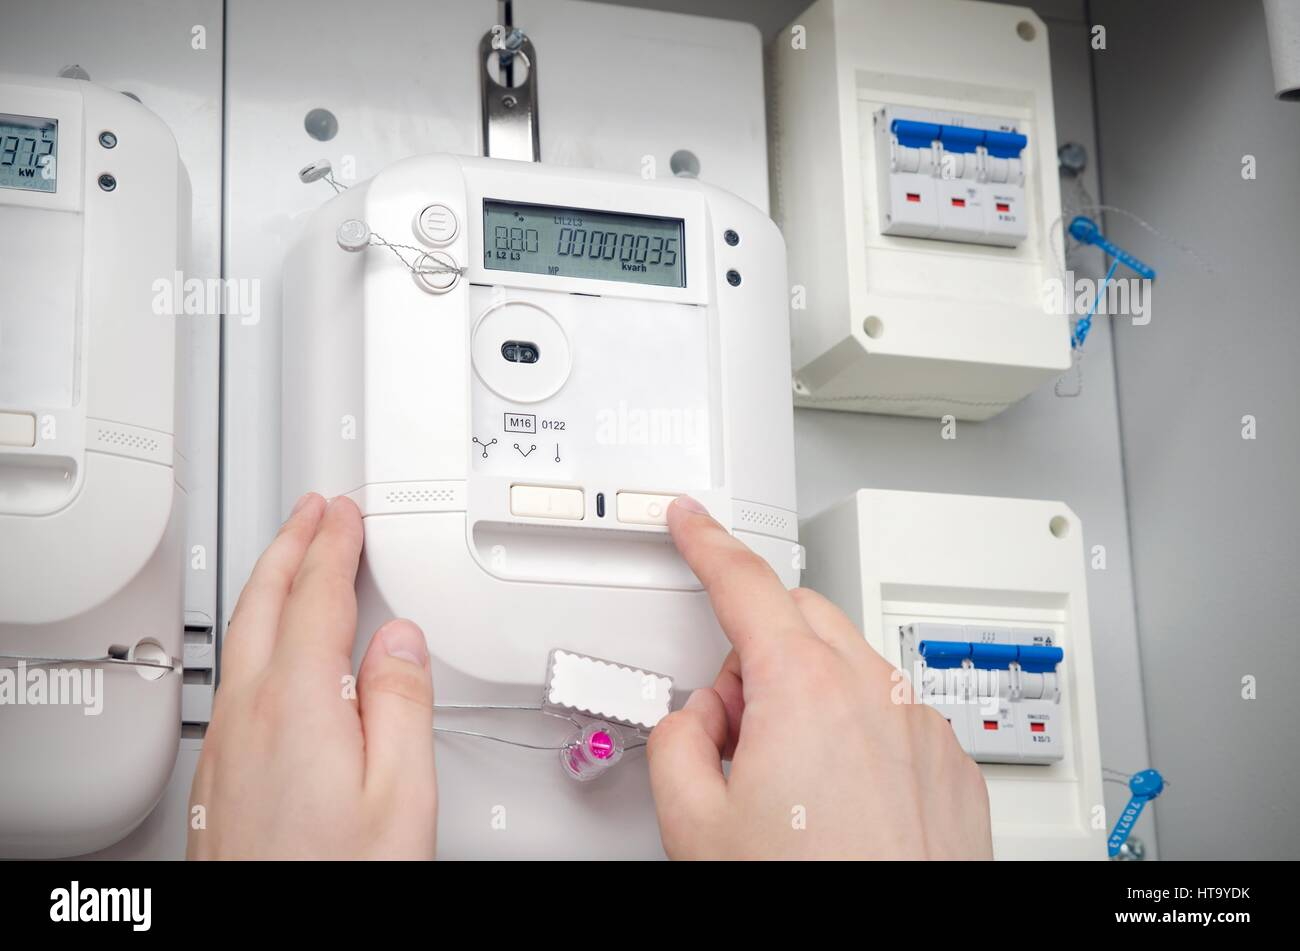 Electric energy meter. Electrical technician servicing unit - Stock Image